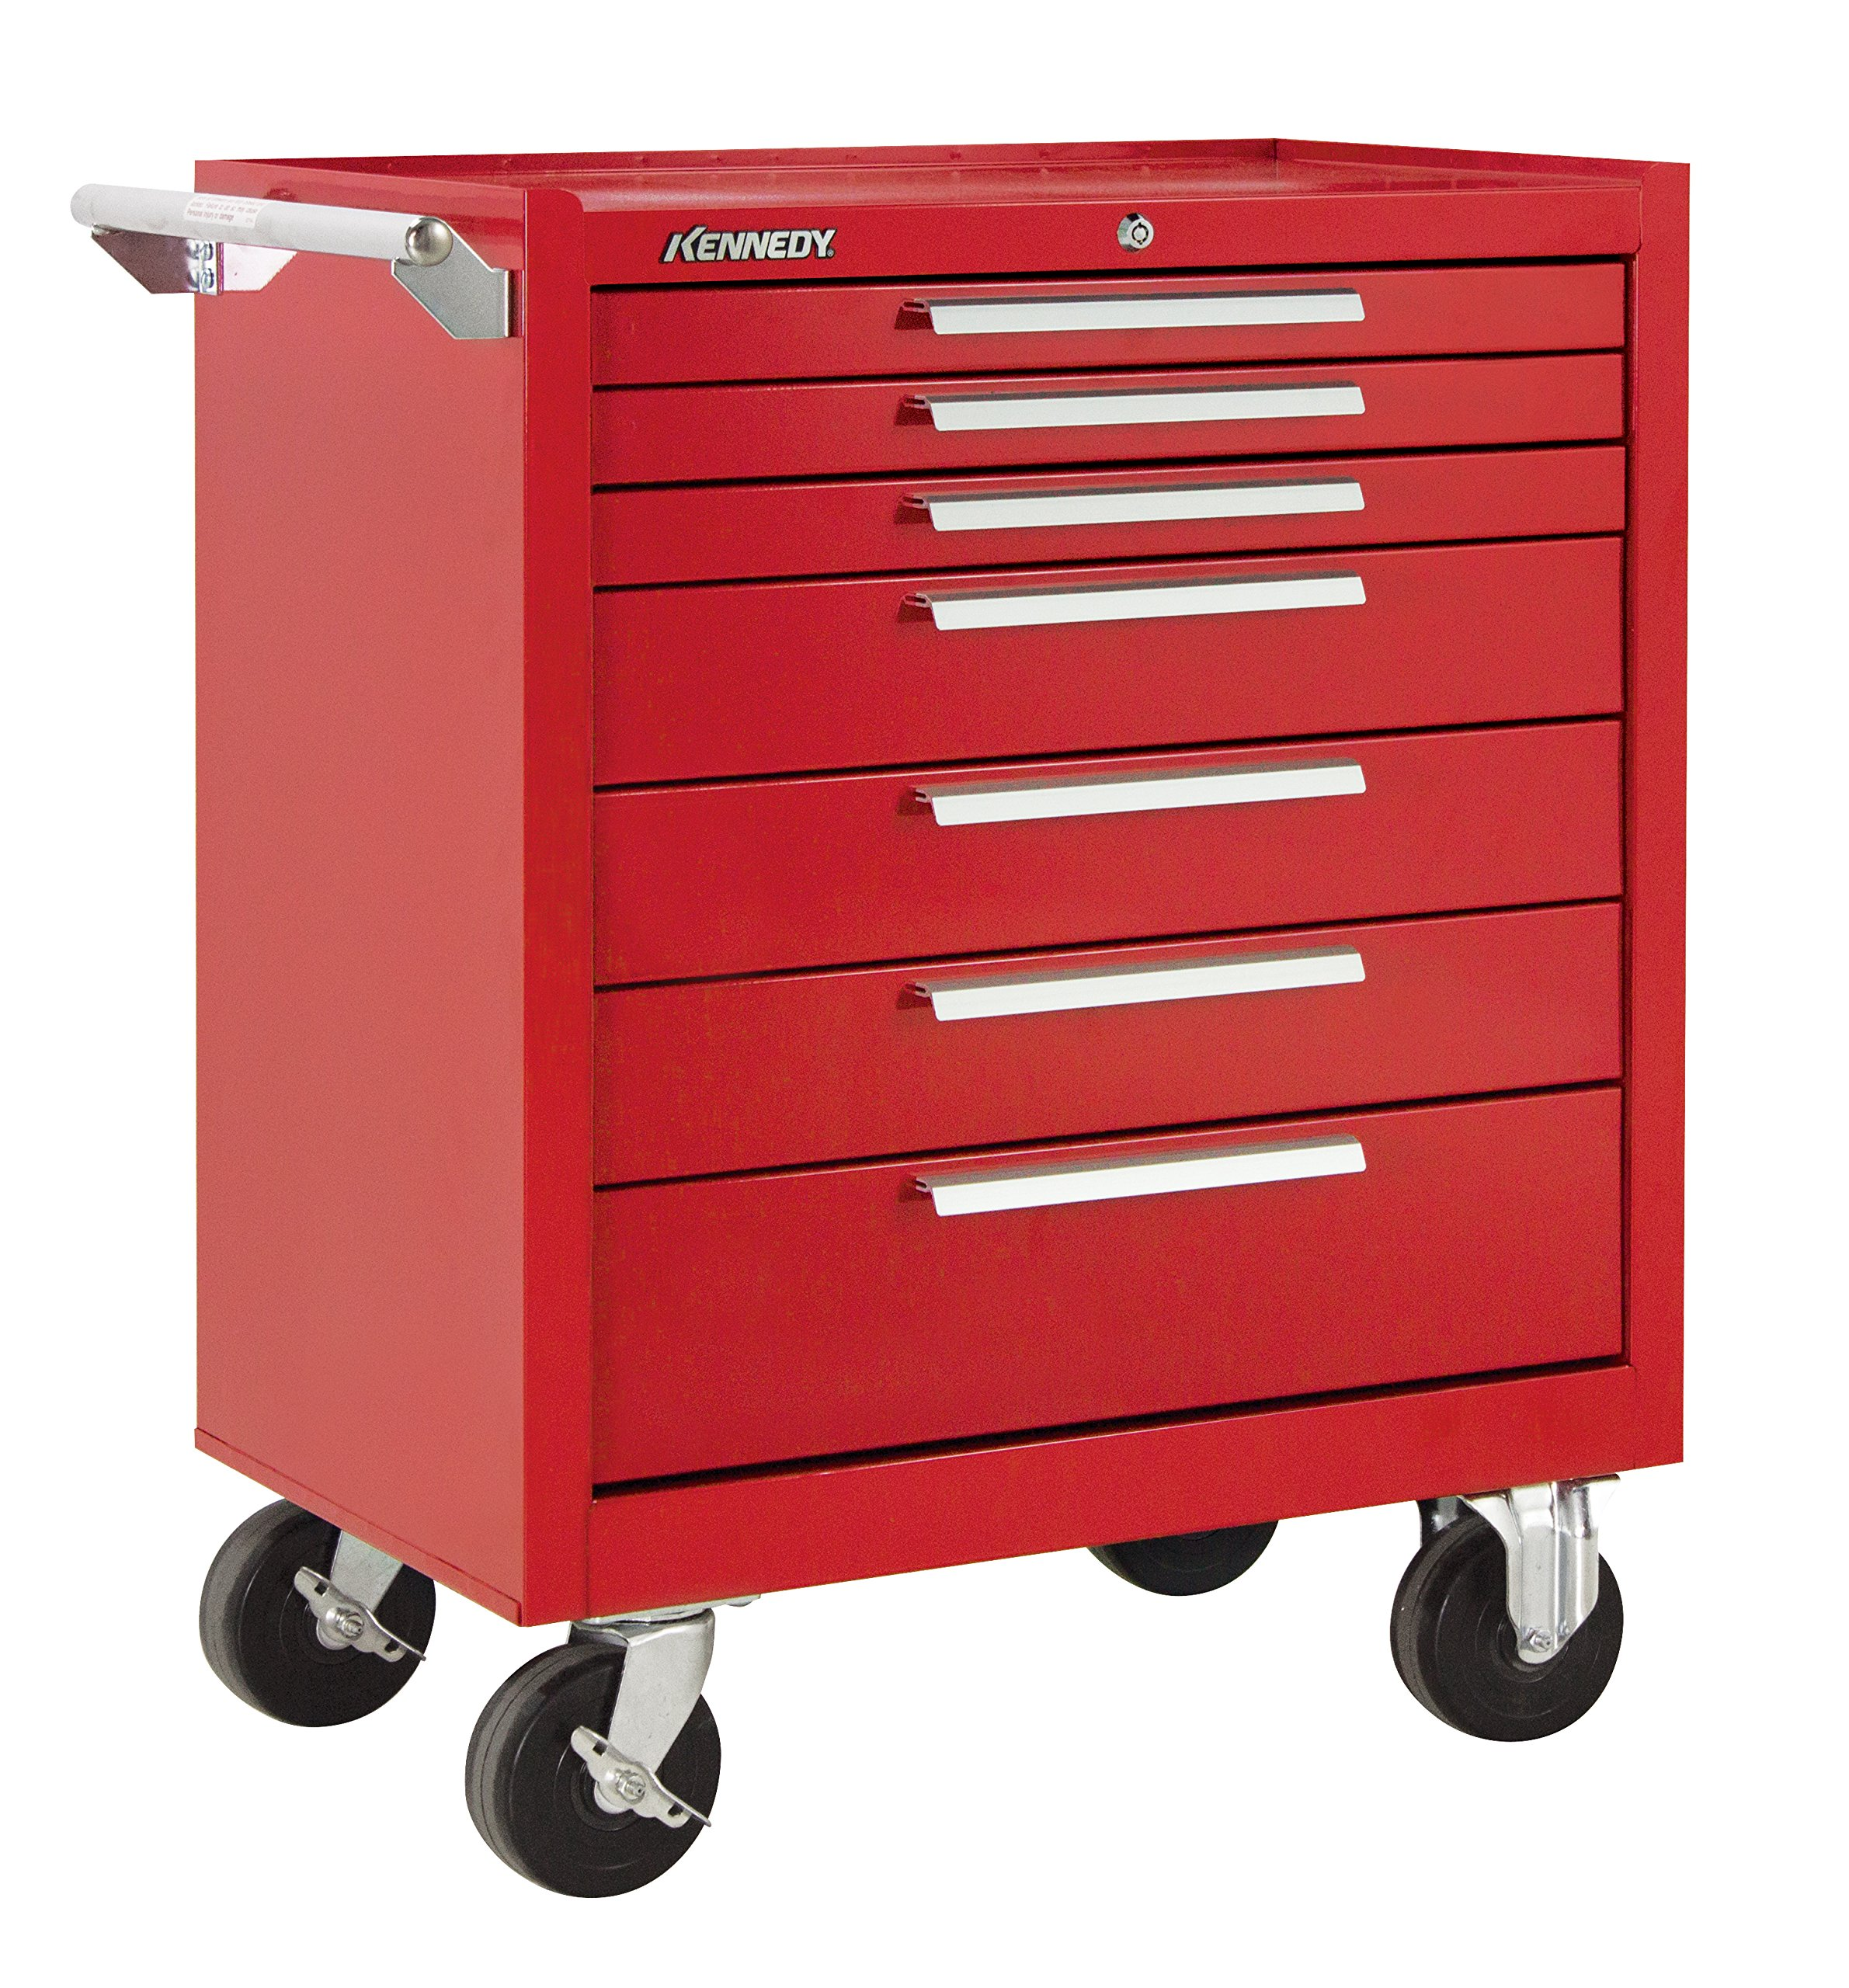 Red Roller Drawer Kennedy Manufacturing Cabinet